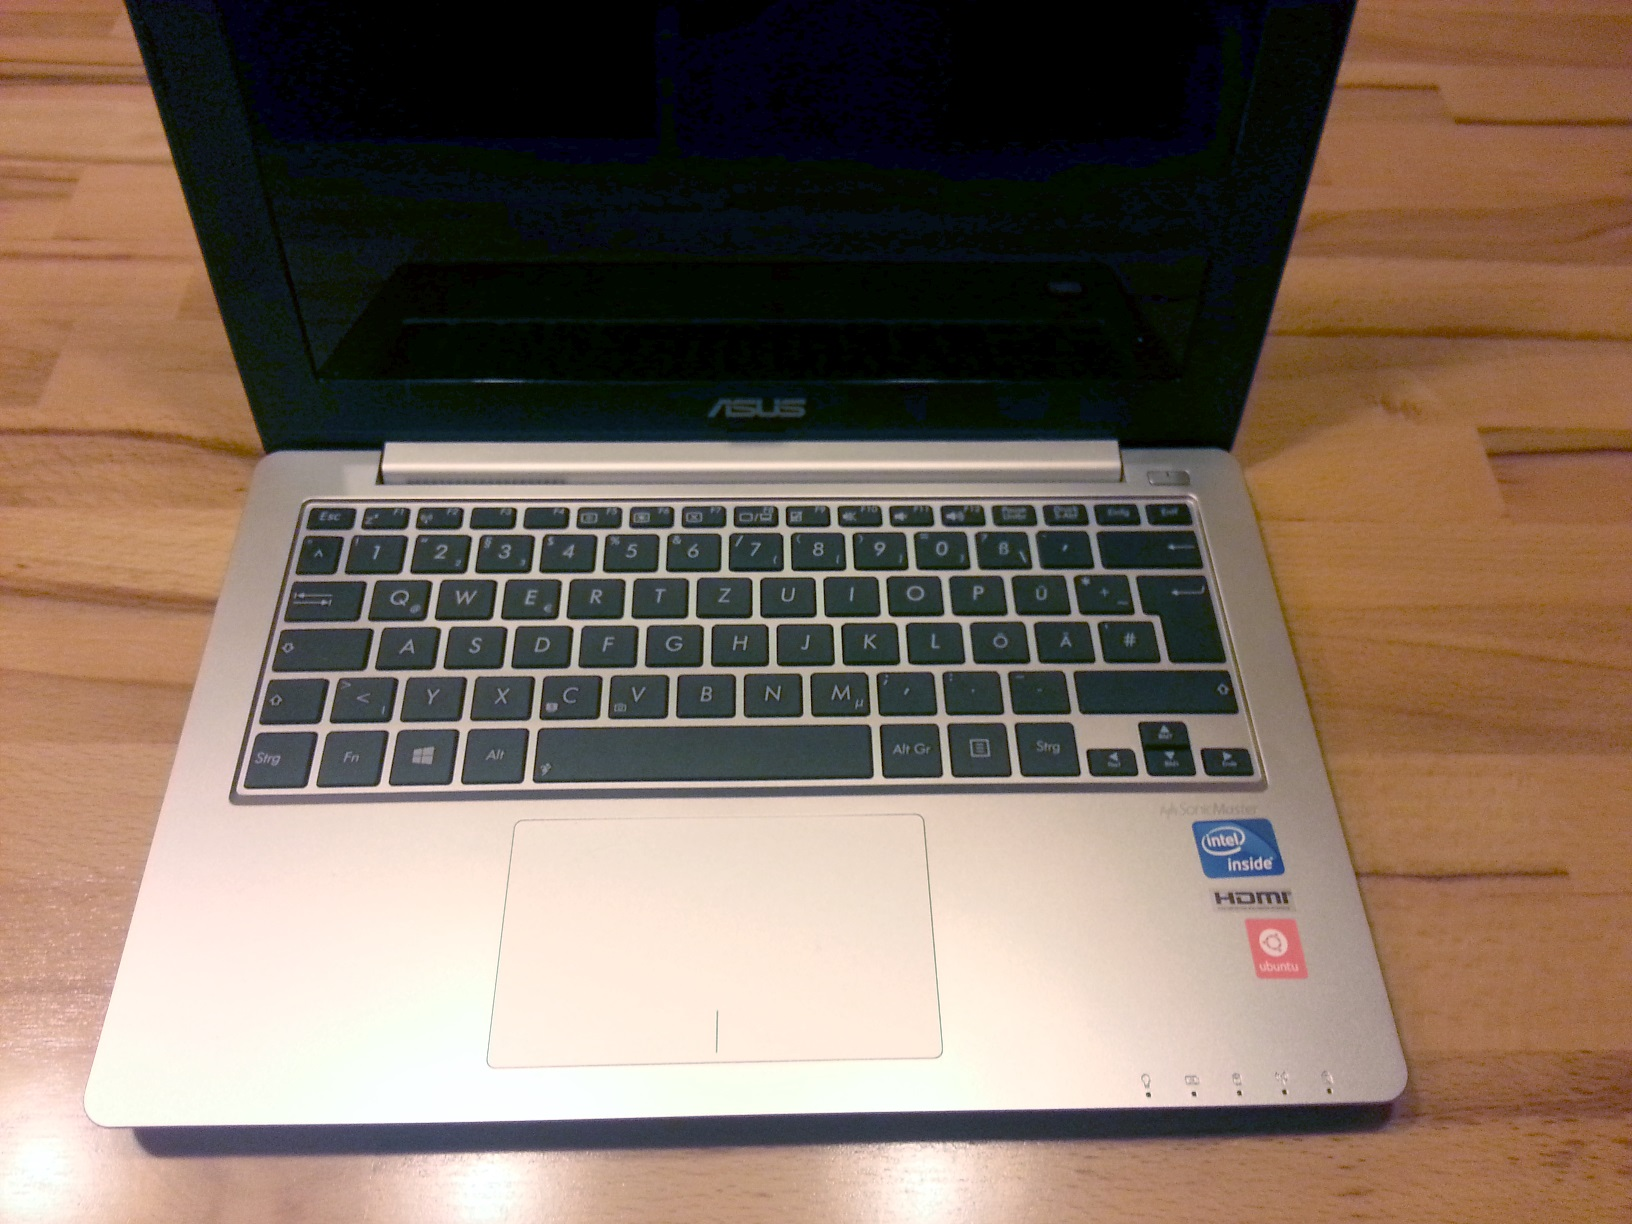 Homeoffice Notebook Asus F201e Im Test Mobilelifeblog 2012 12 08 043932